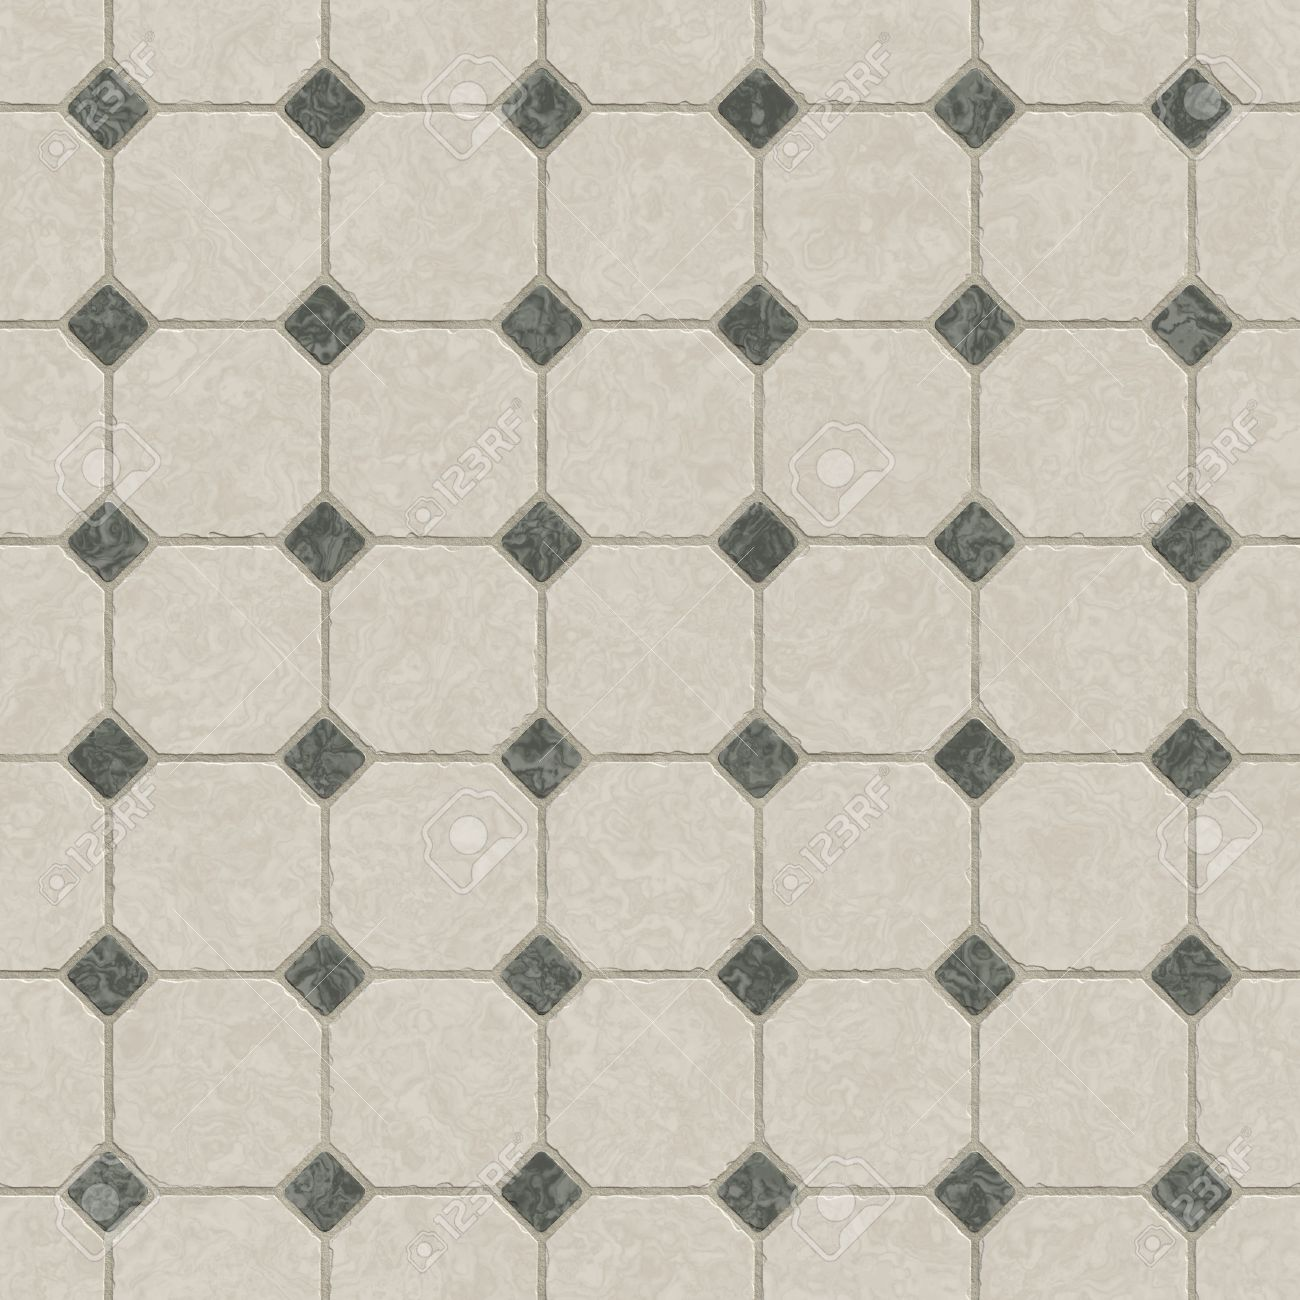 A Marble Kitchen Floor Tiles Abstract Background